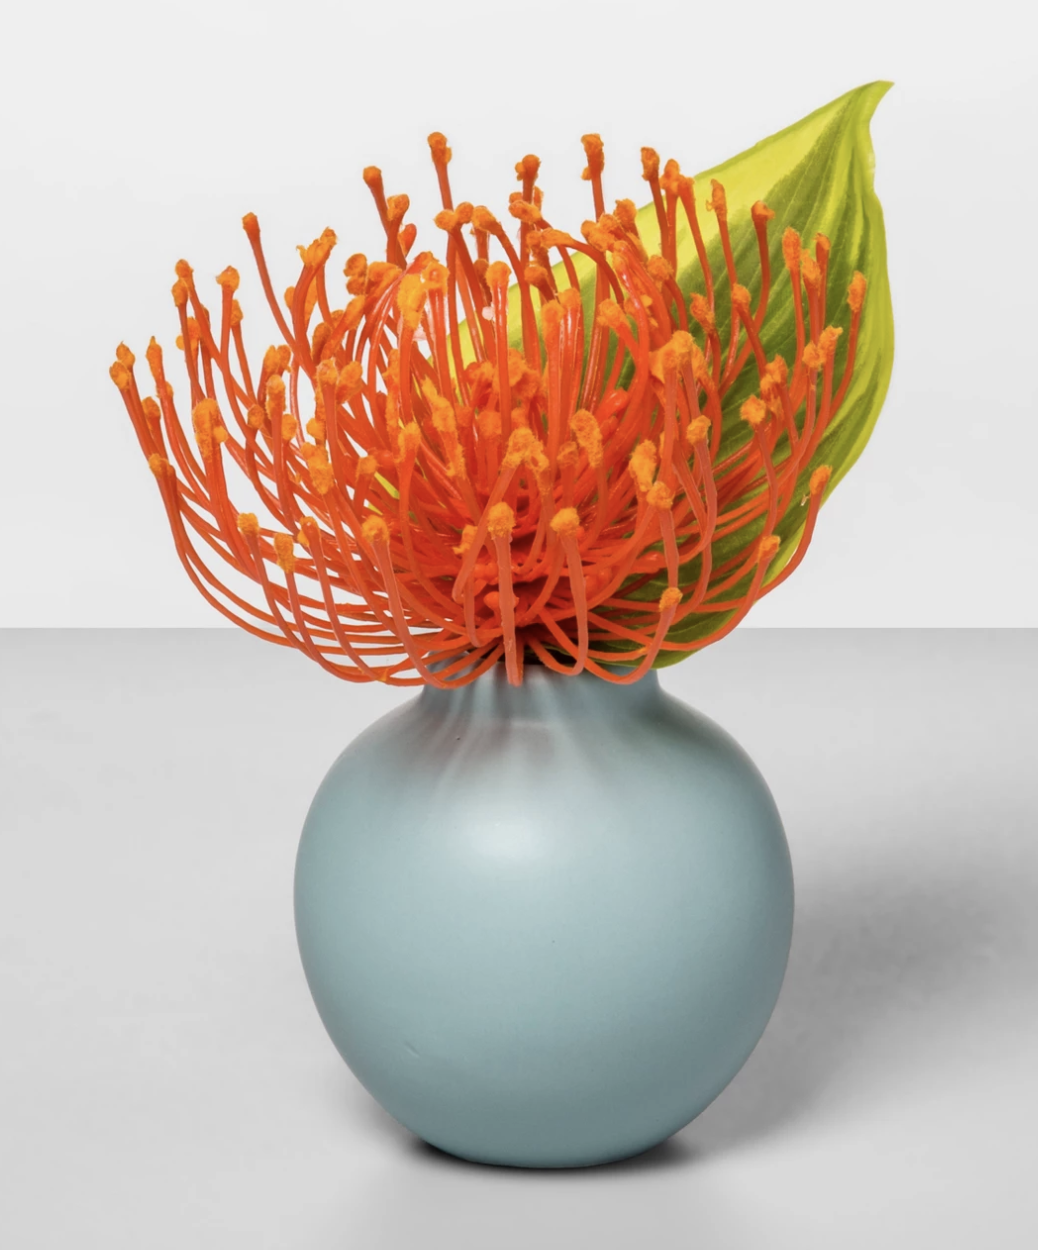 Do you LOVE those colorful, small faux florals in ceramic pots from Target as much as I do? - Click the image to learn more!